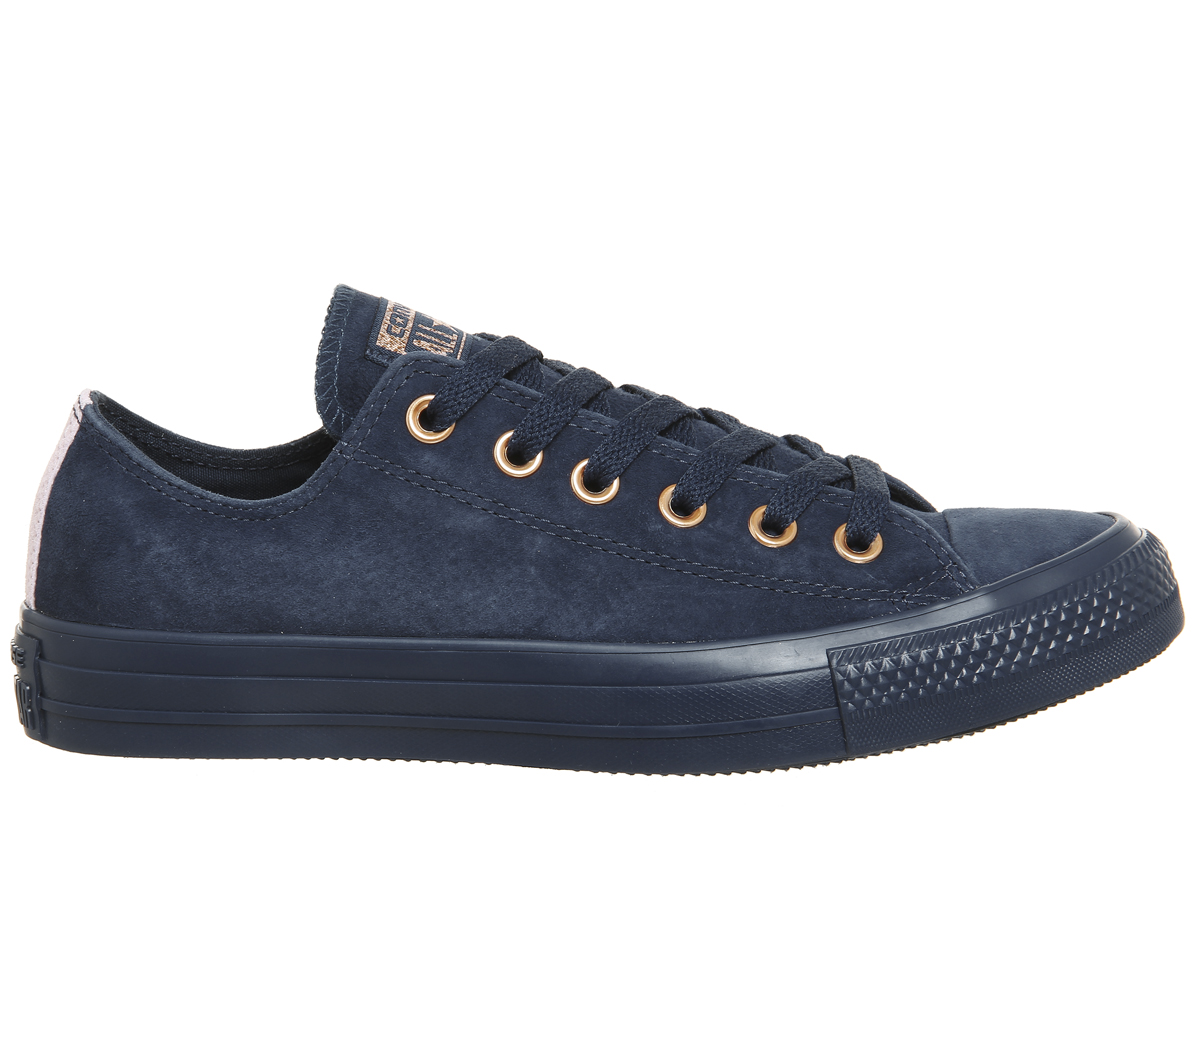 f8818781c61839 Sentinel Womens Converse All Star Low Leather Navy Cherry Blossom Exclusive  Trainers Shoe